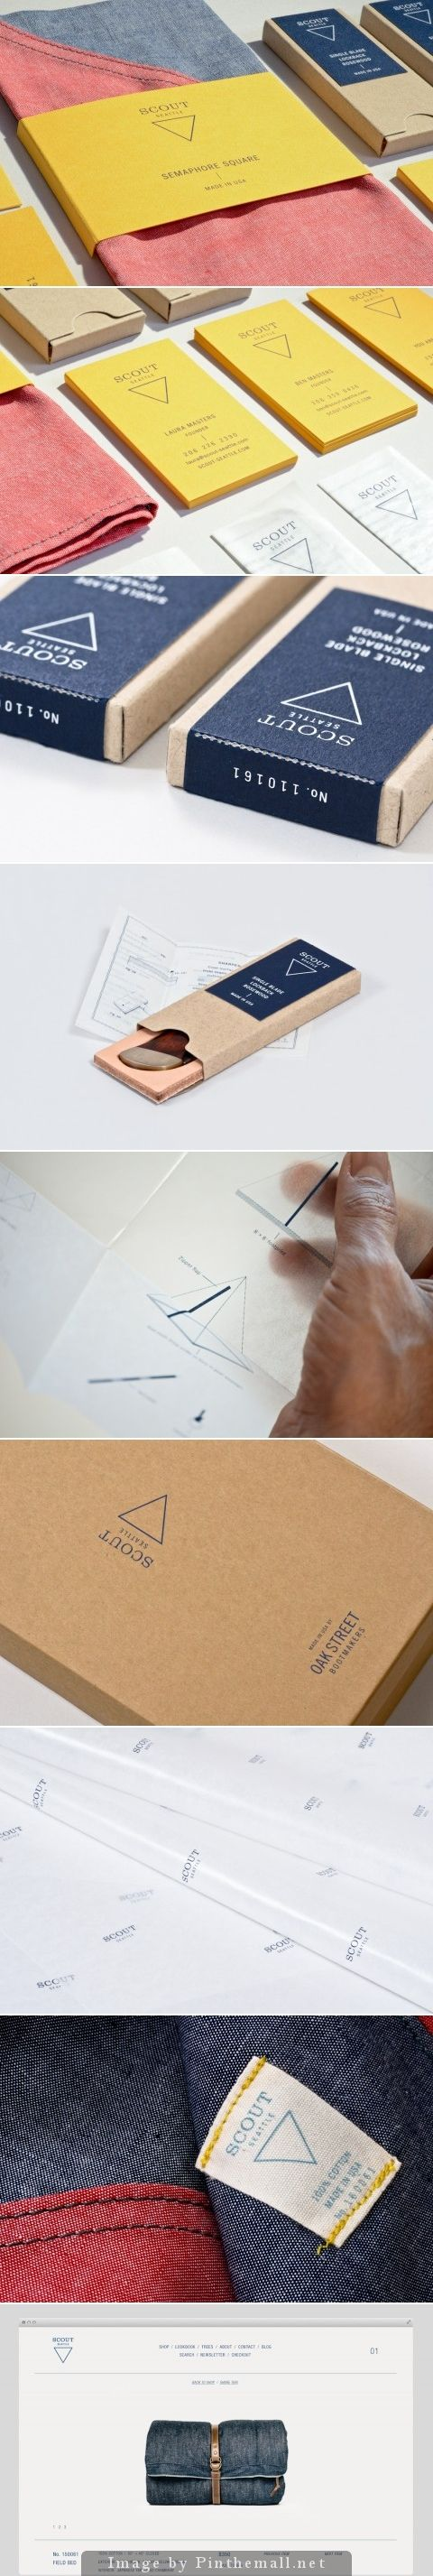 Scout products #identity #packaging #branding PD